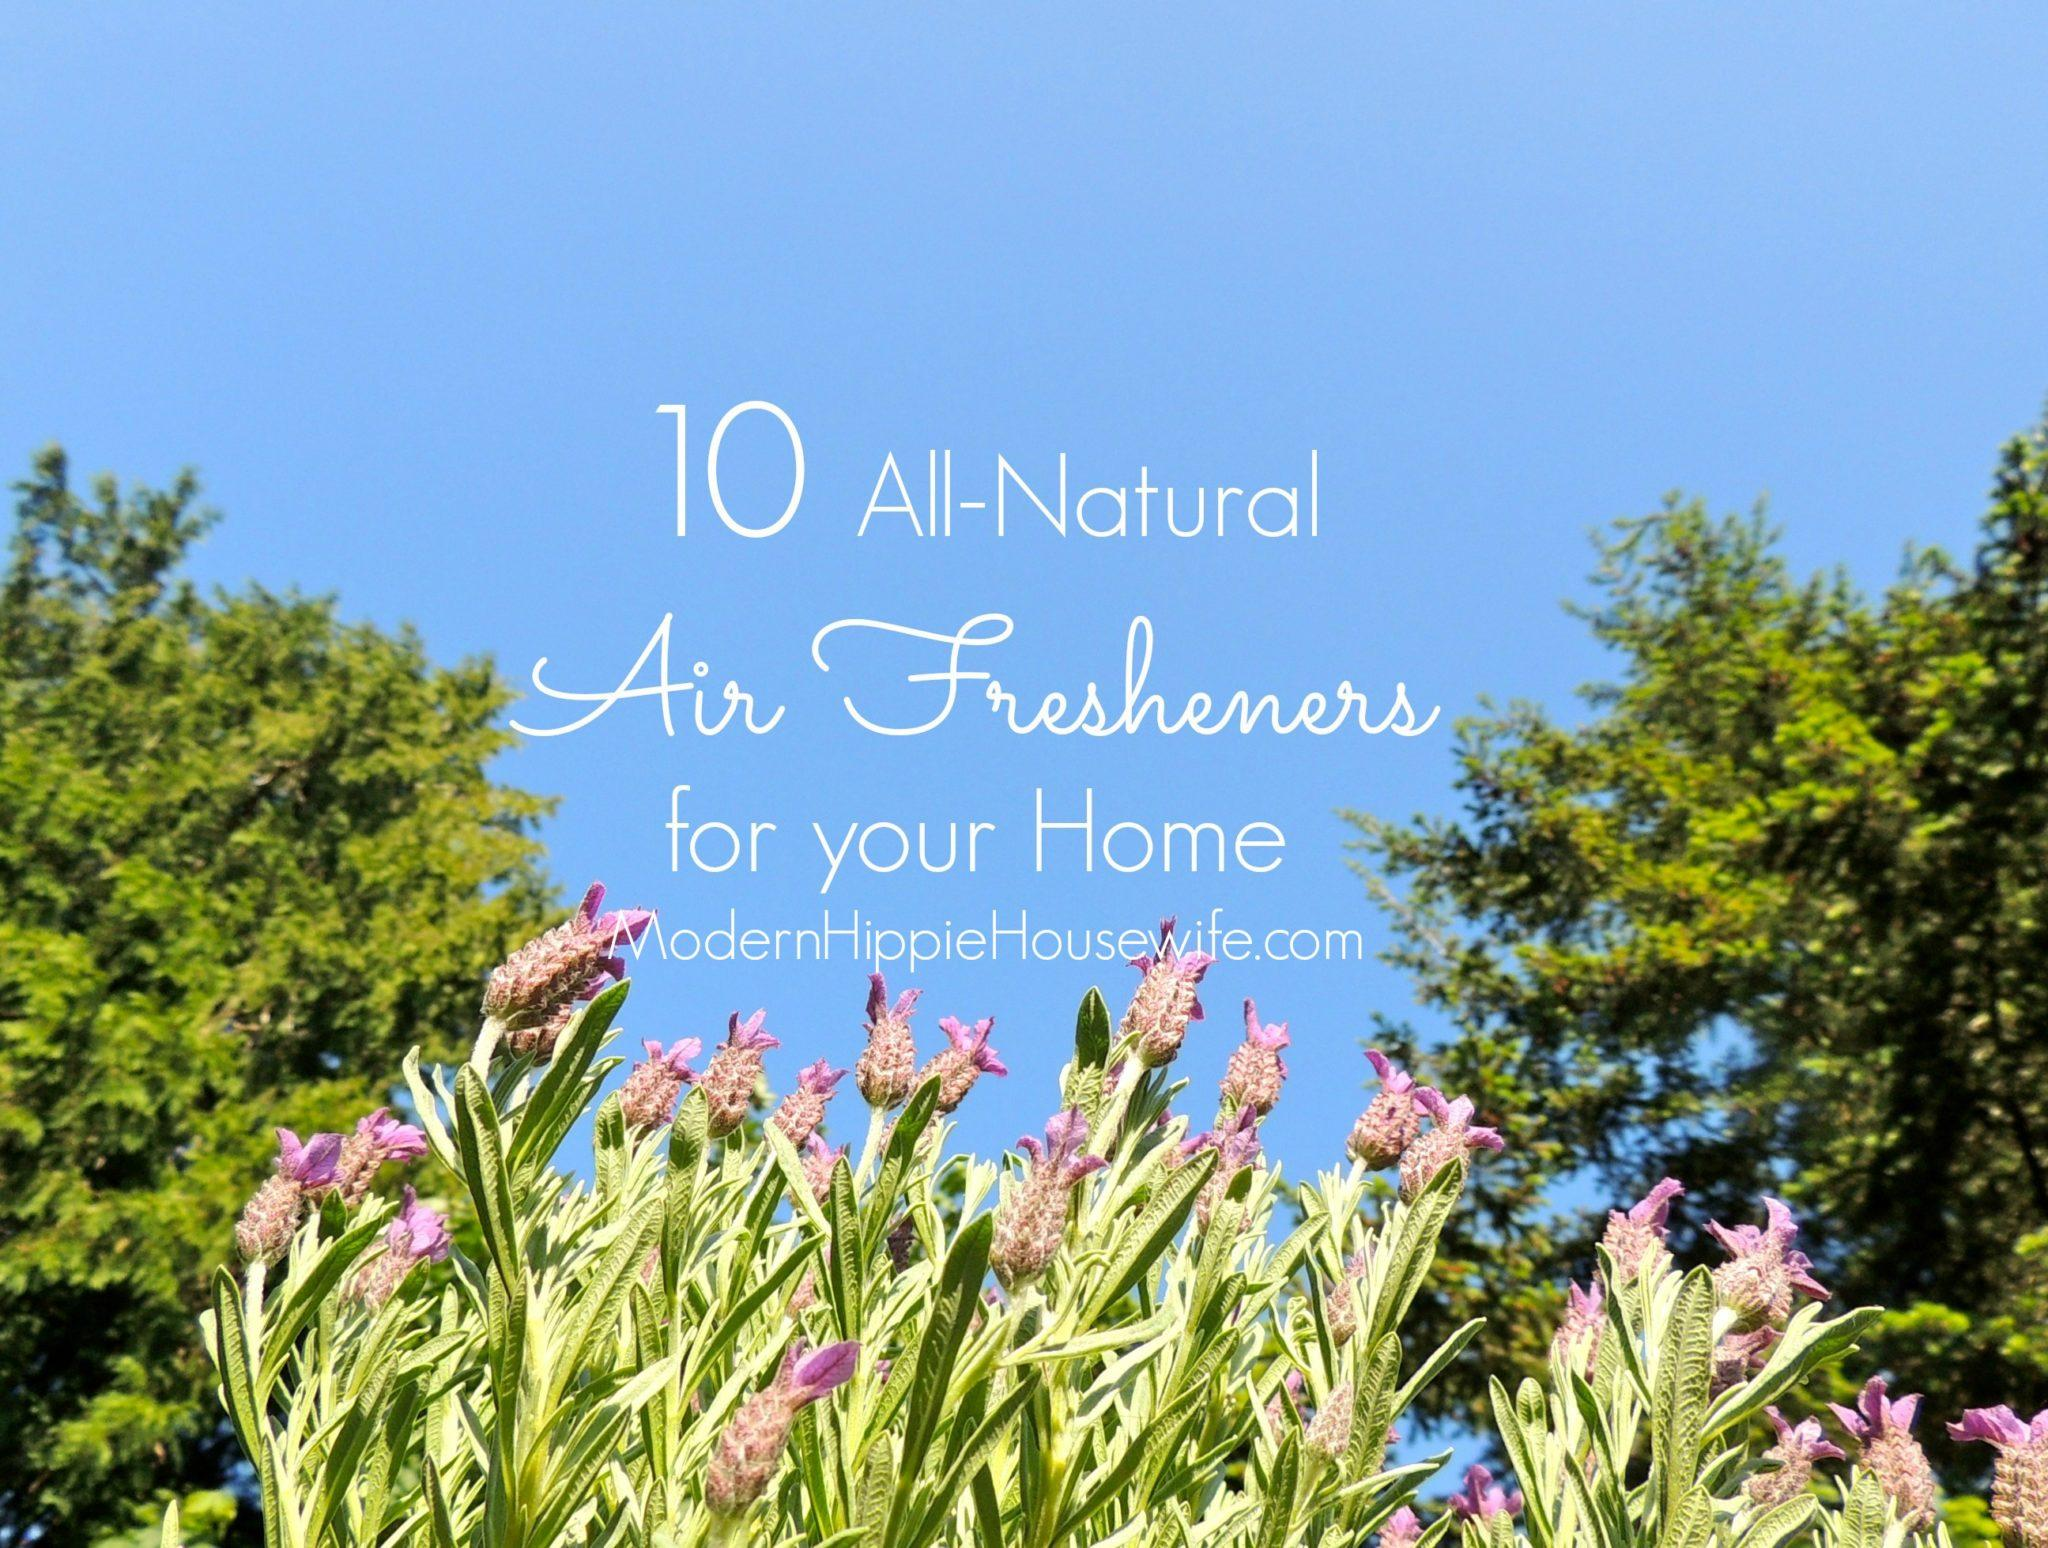 10 All-Natural Air Fresheners for your Home